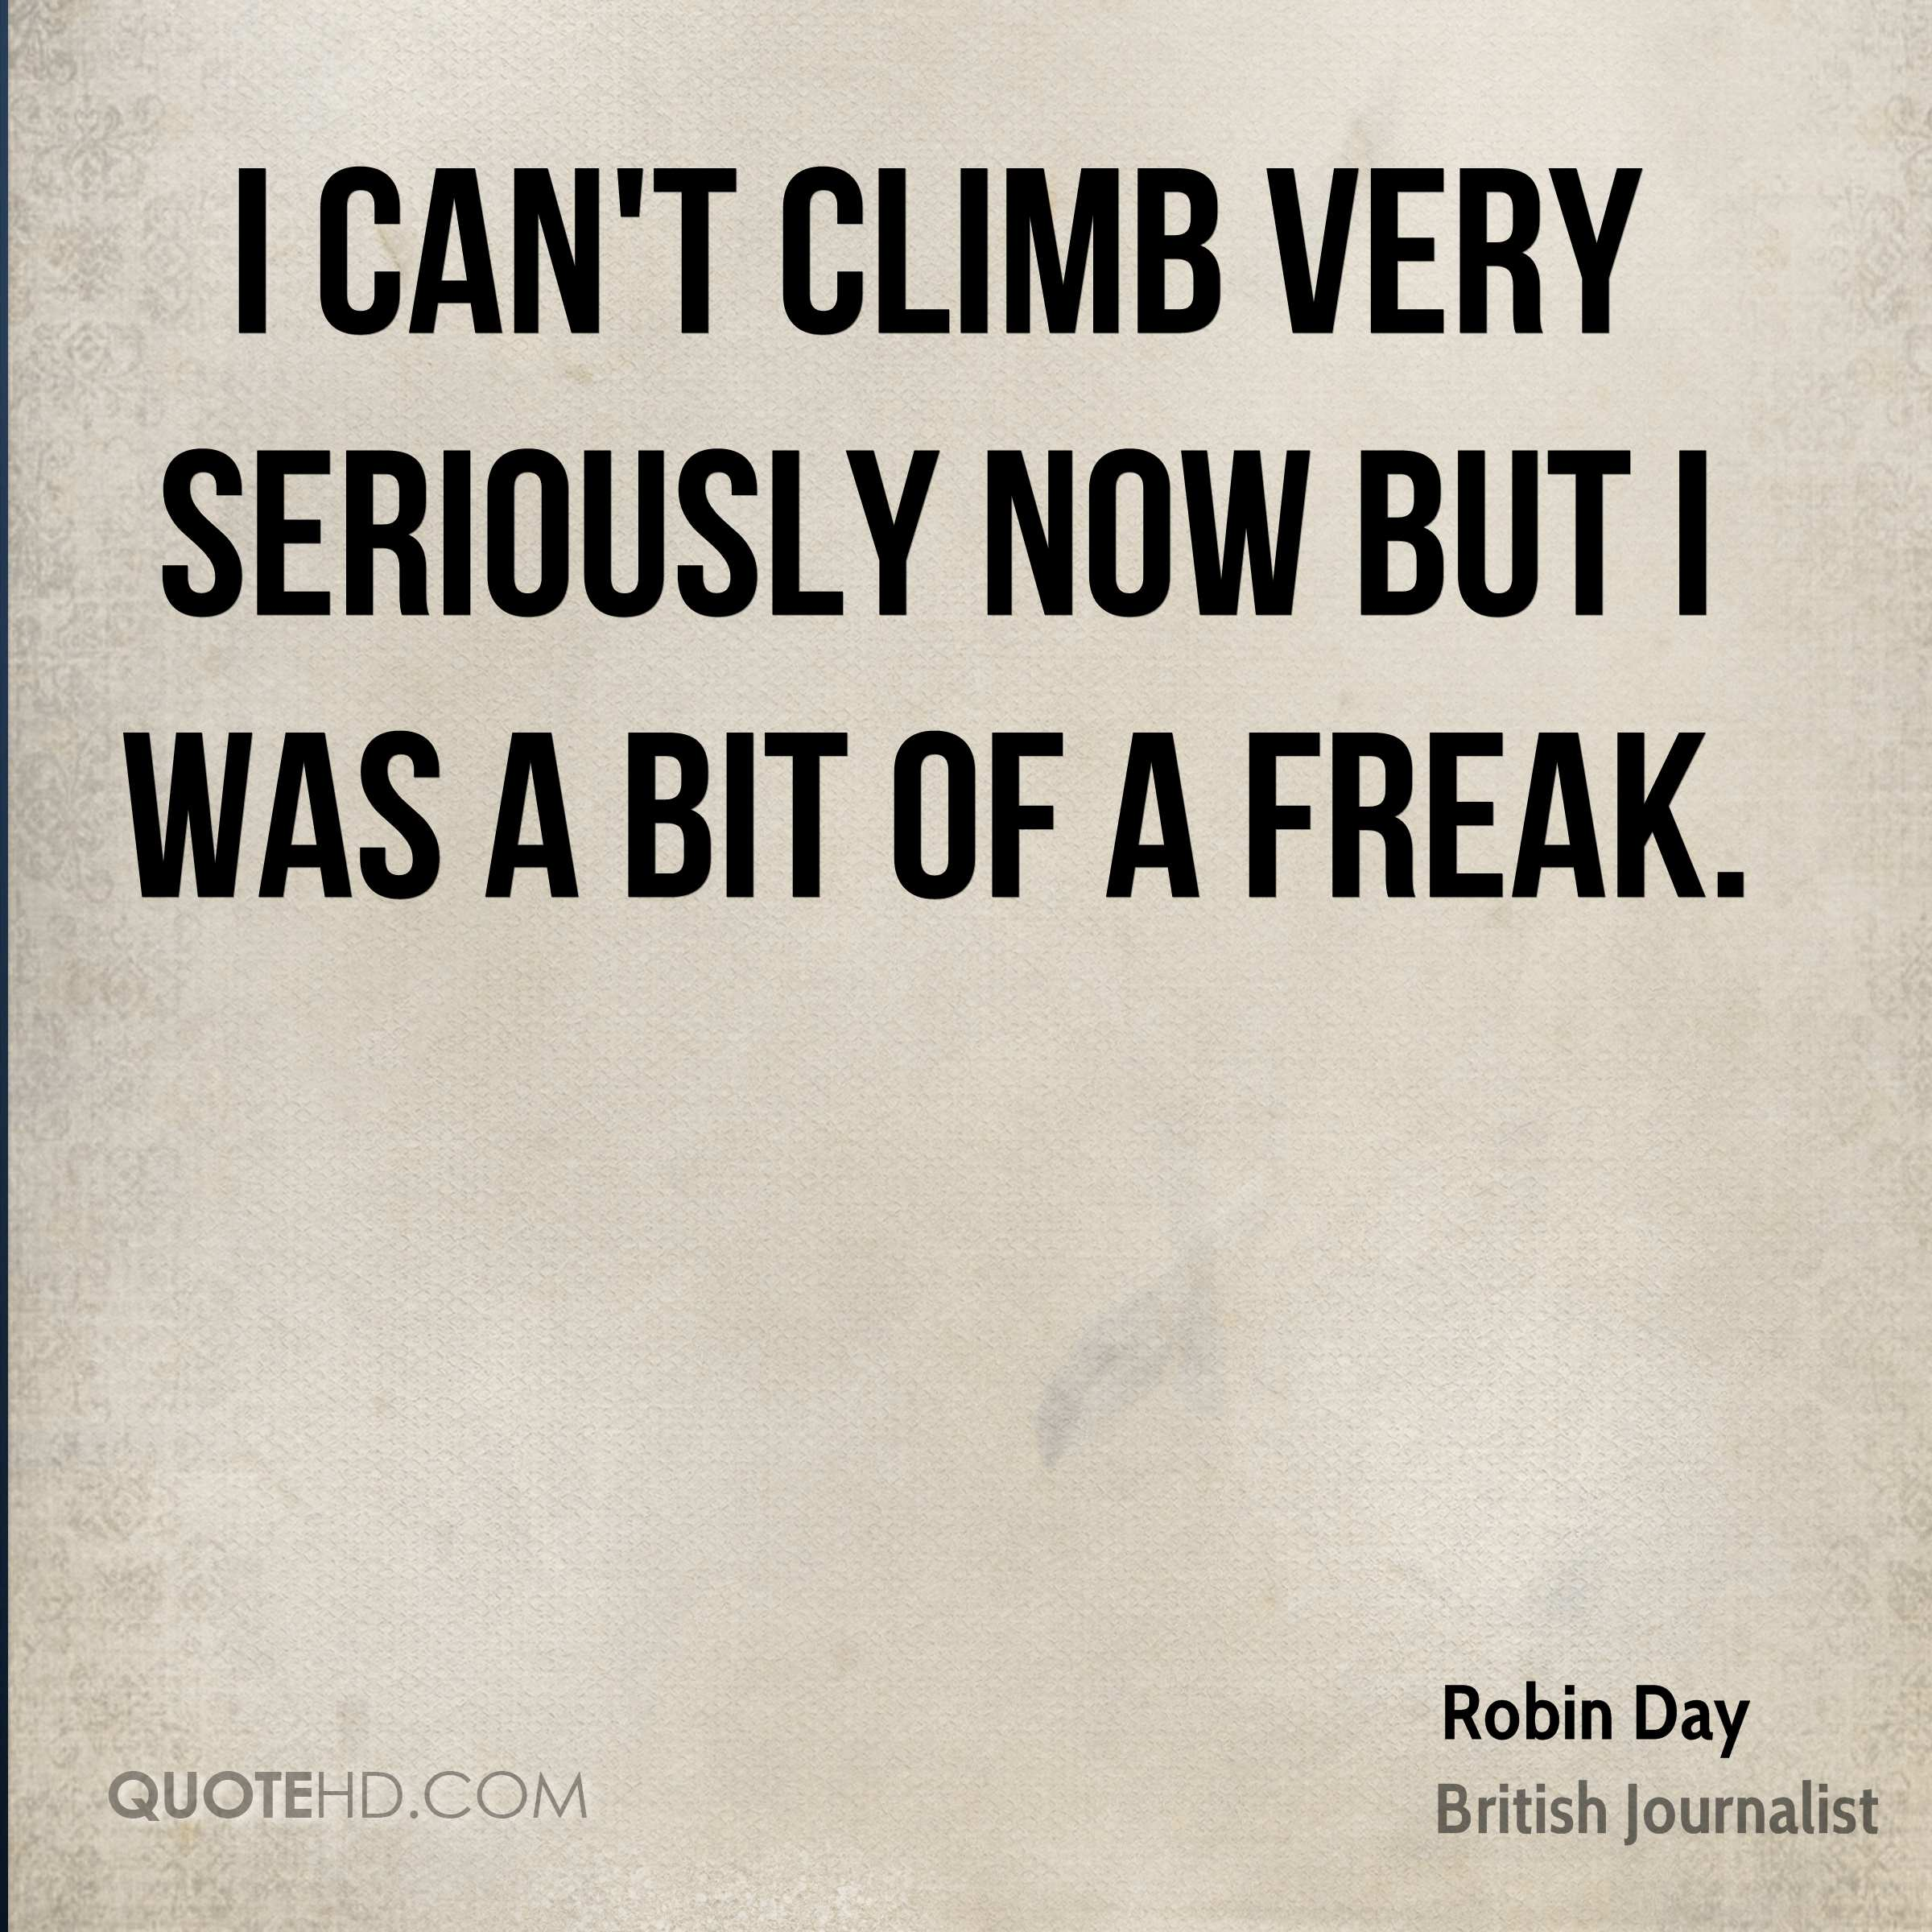 I can't climb very seriously now but I was a bit of a freak.